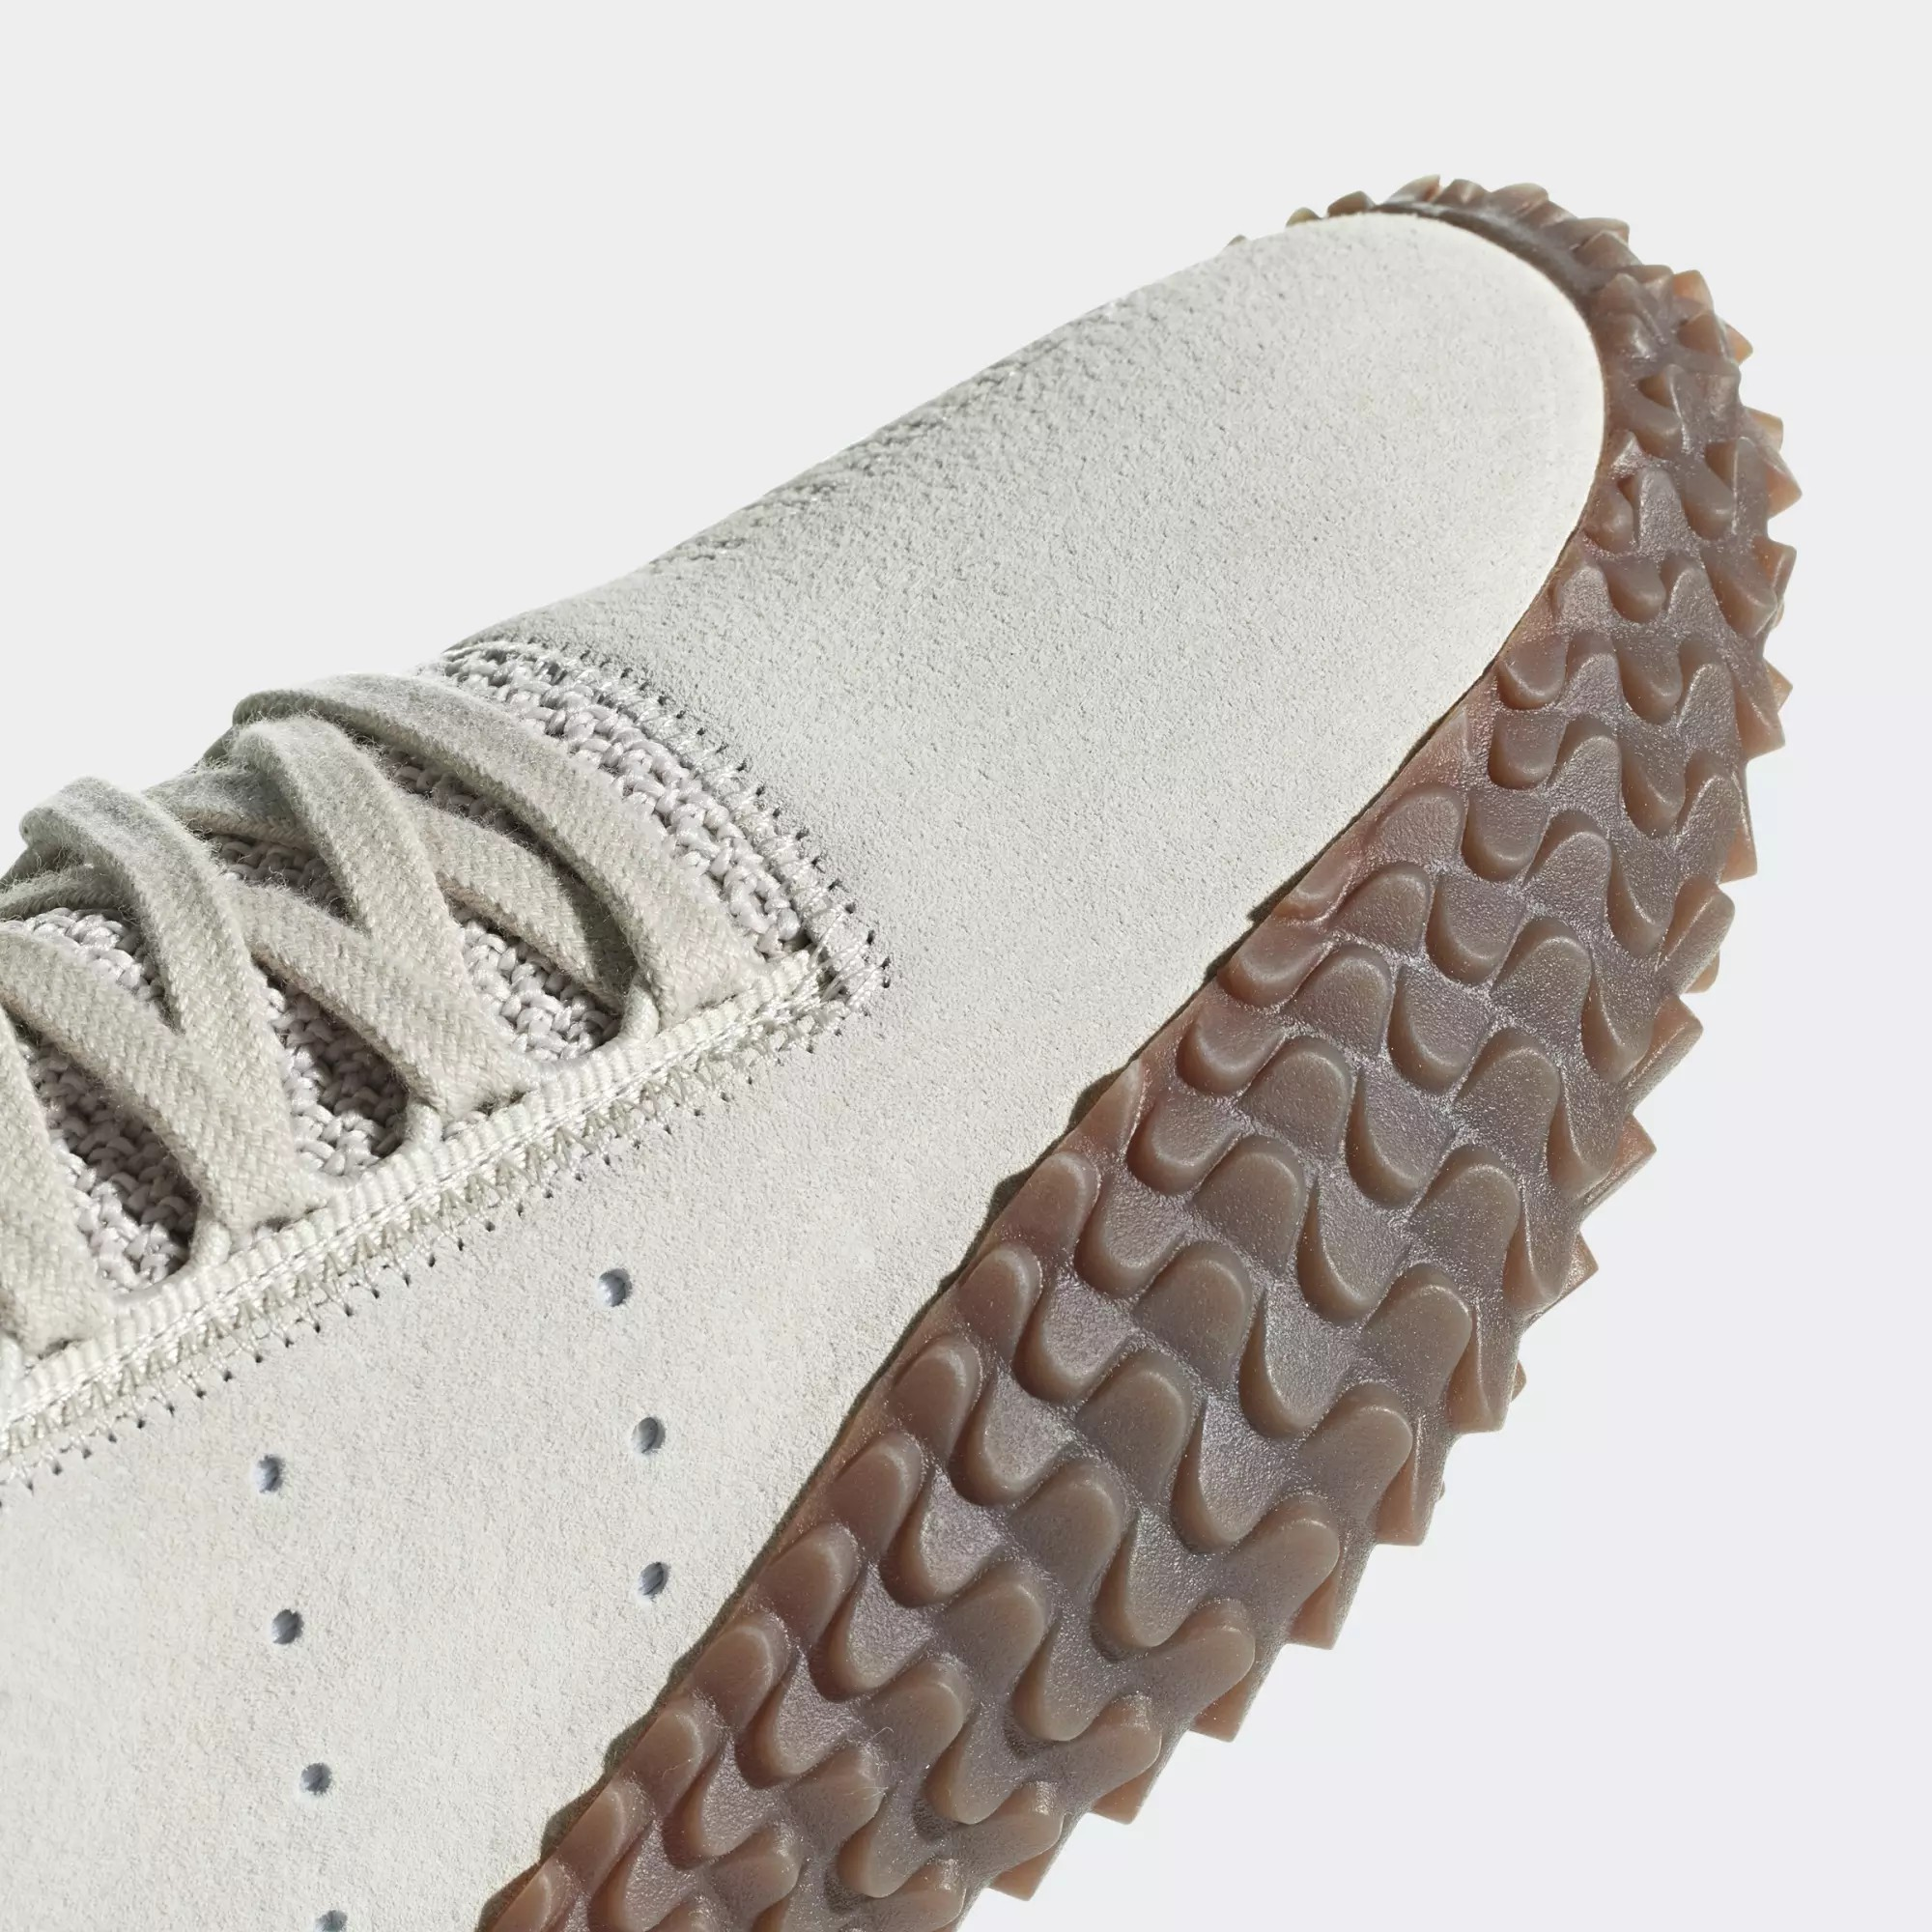 0b0660fff2a ... Click to enlarge image  adidas kamanda 01 shoes clear brown clear brown crystal white l.jpg